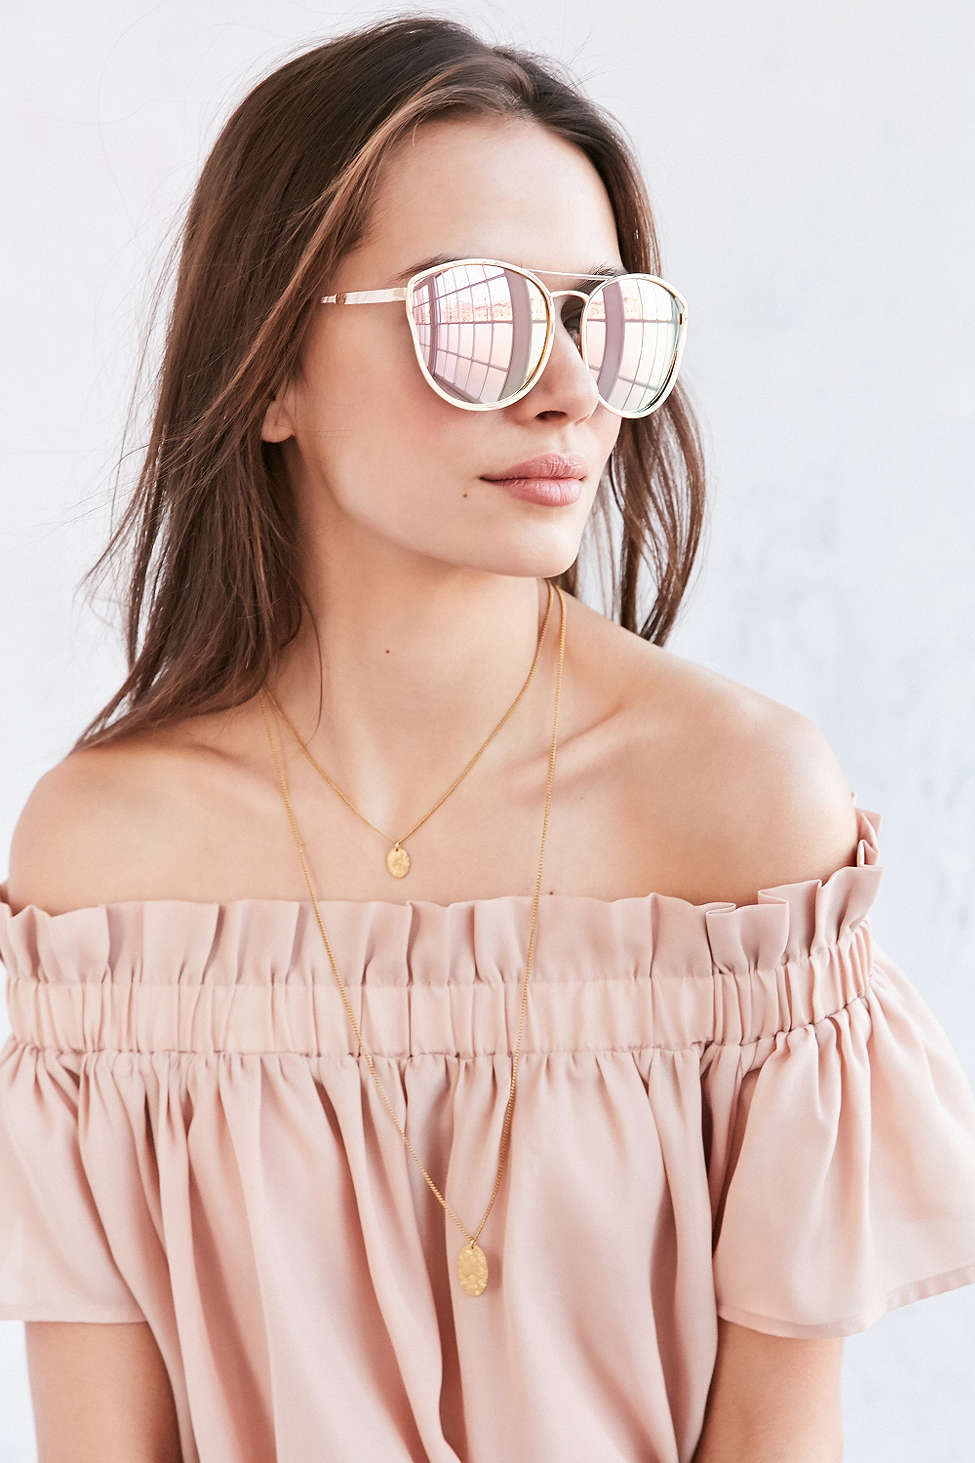 BLUSH TOP + SUNGLASSES